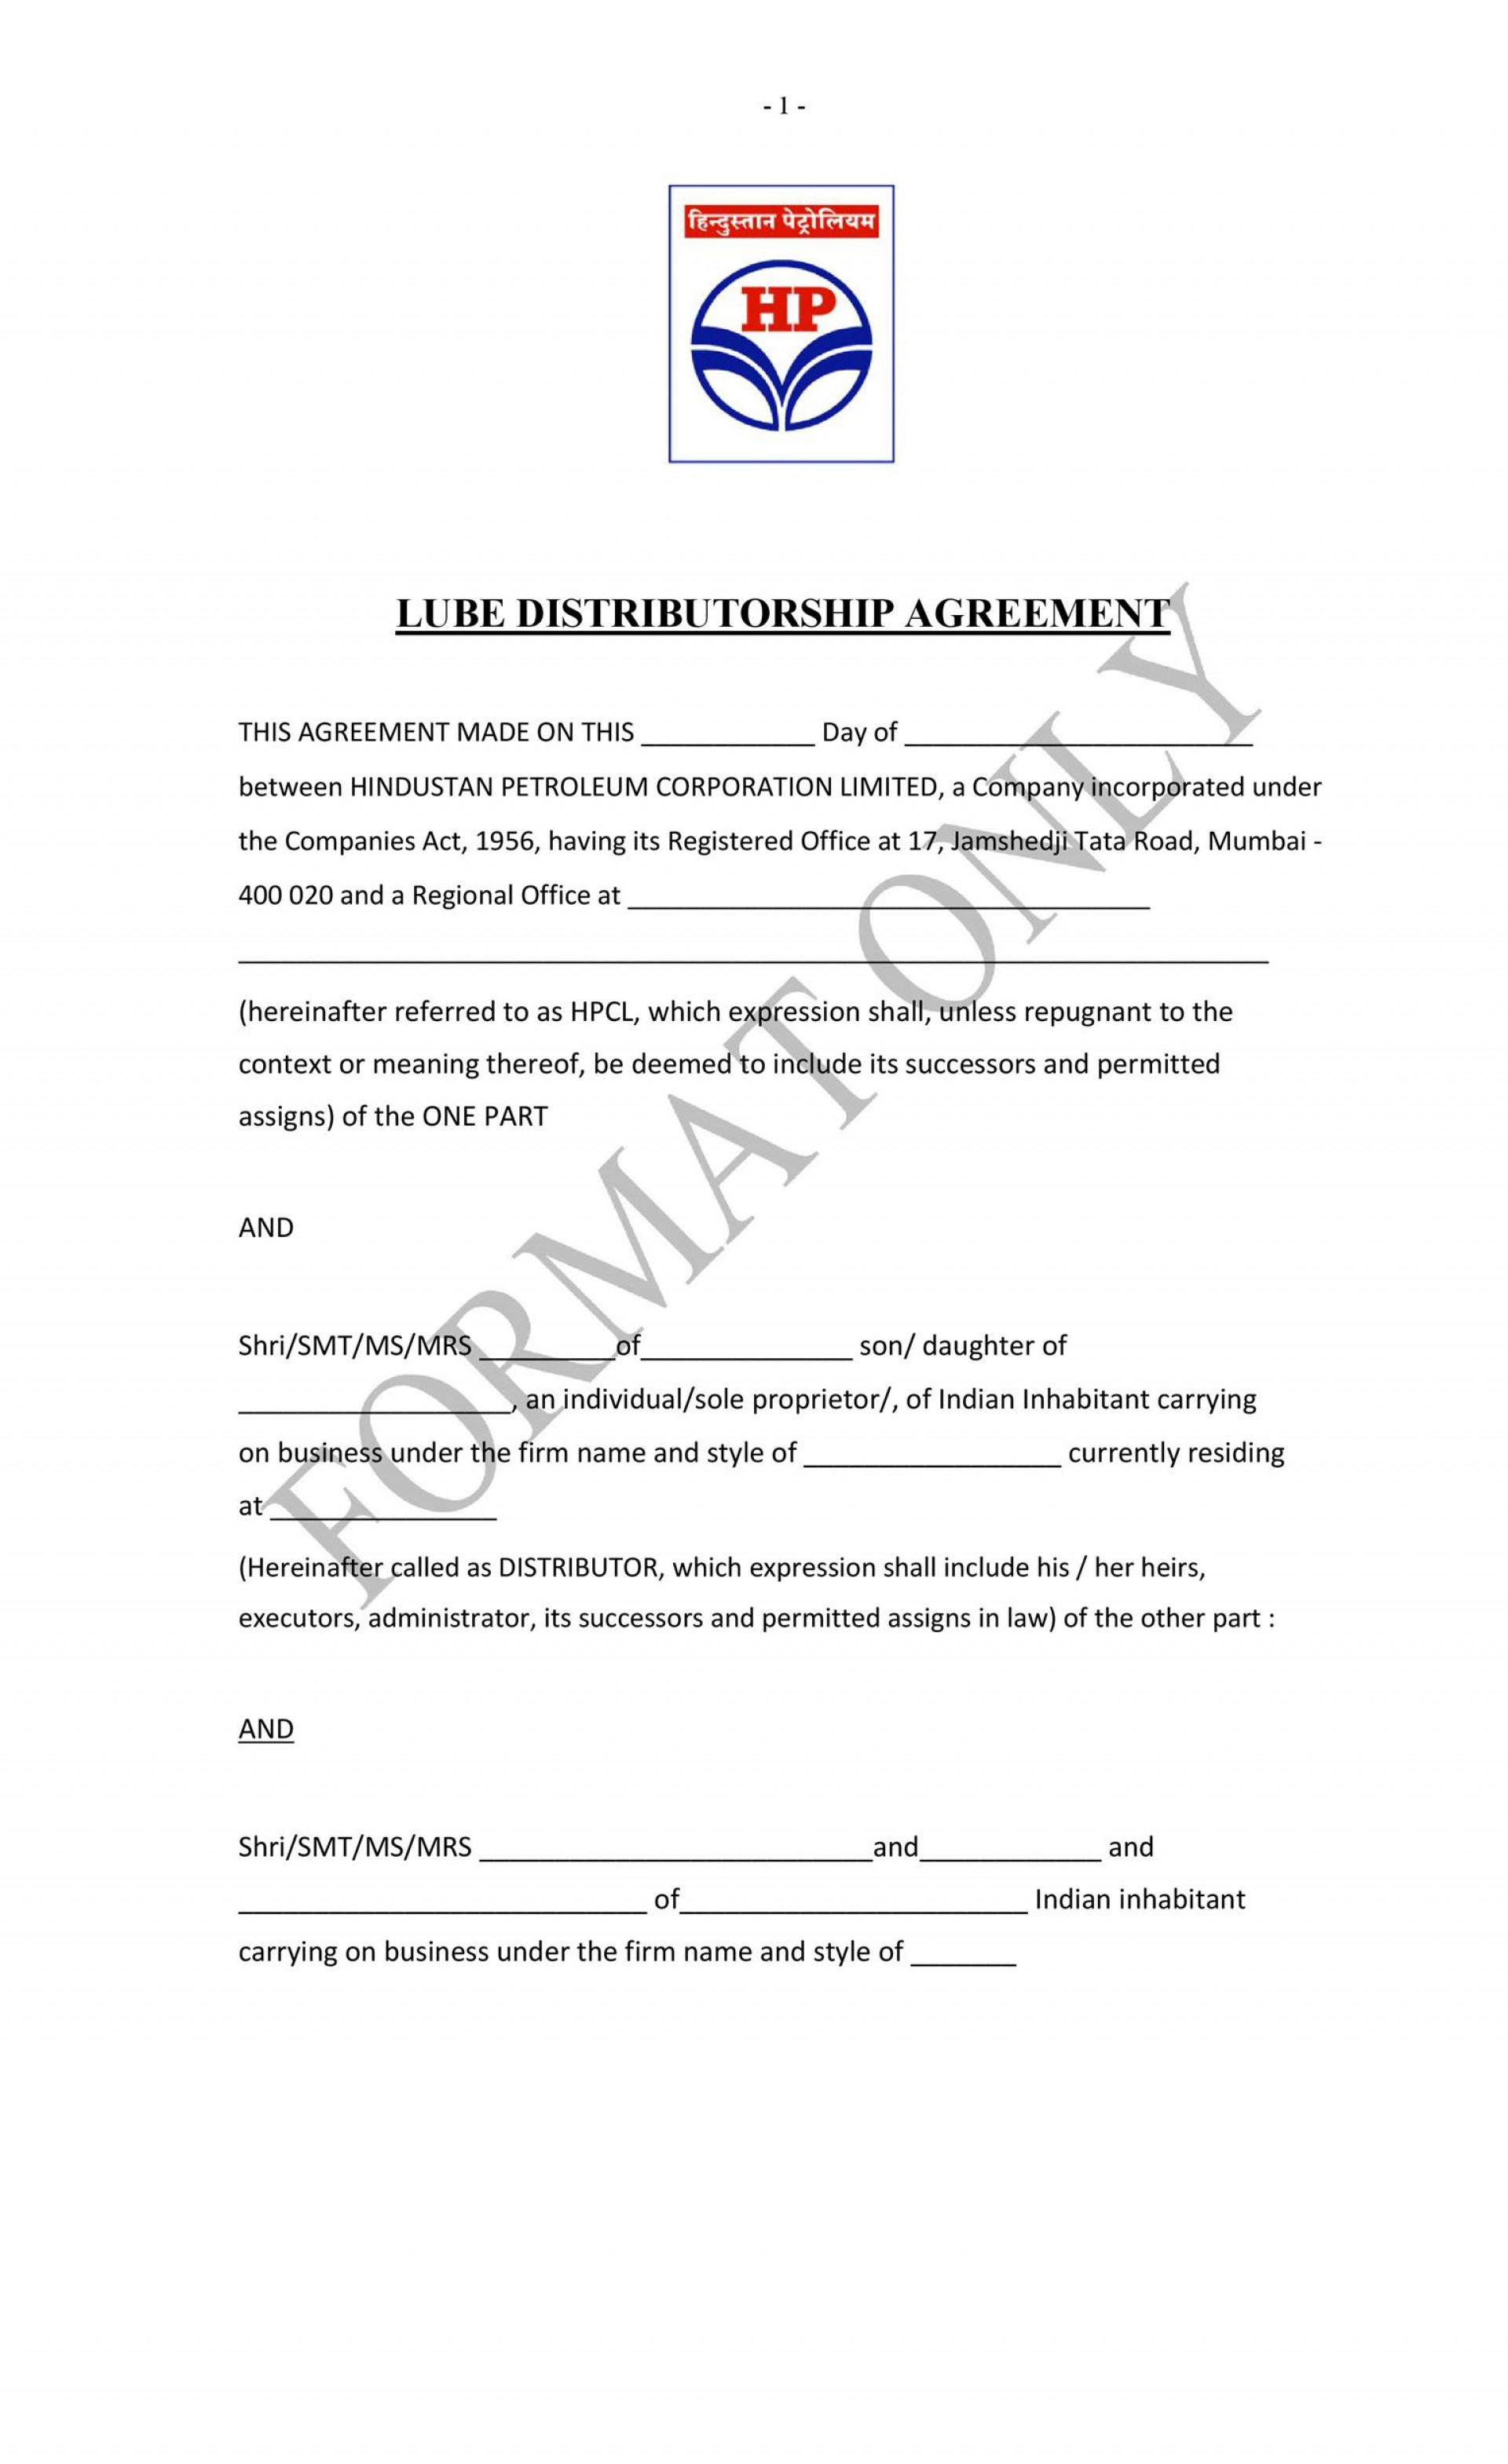 009 Awful Exclusive Distribution Agreement Template Free Download Inspiration 1920